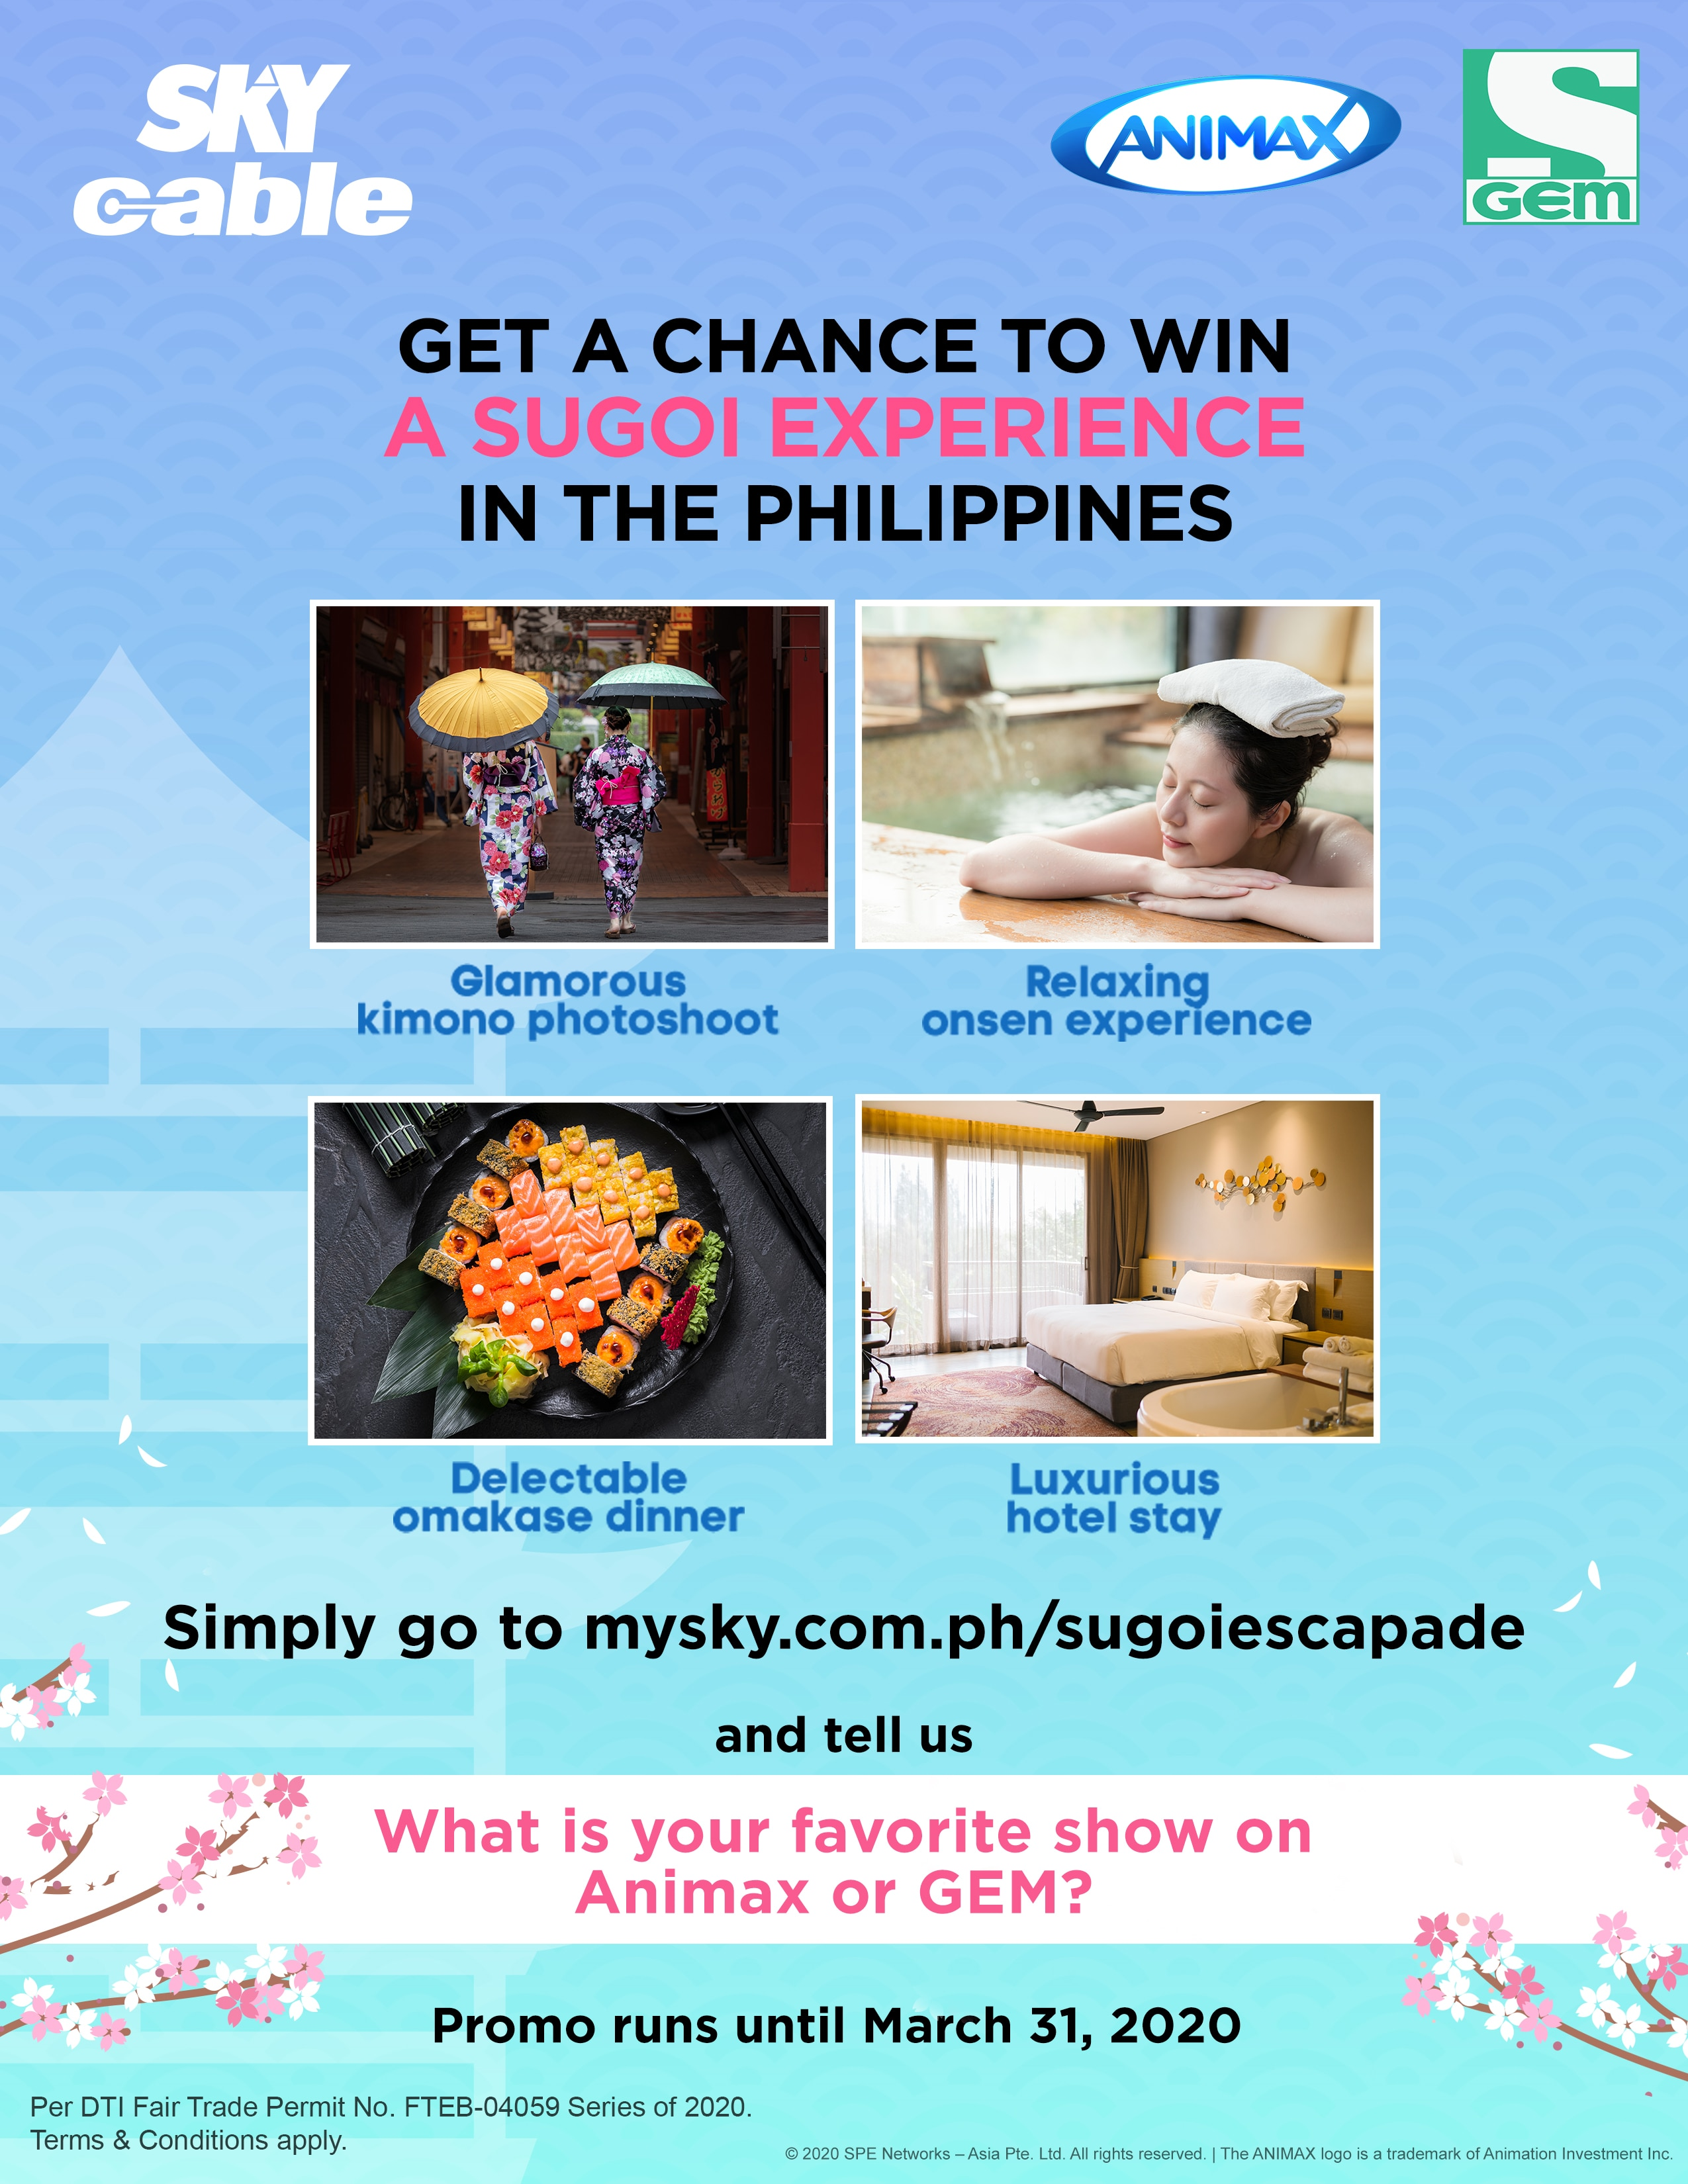 Animax and Gem treat SKY subscribers to a Sugoi Japanese experience in the Philippines